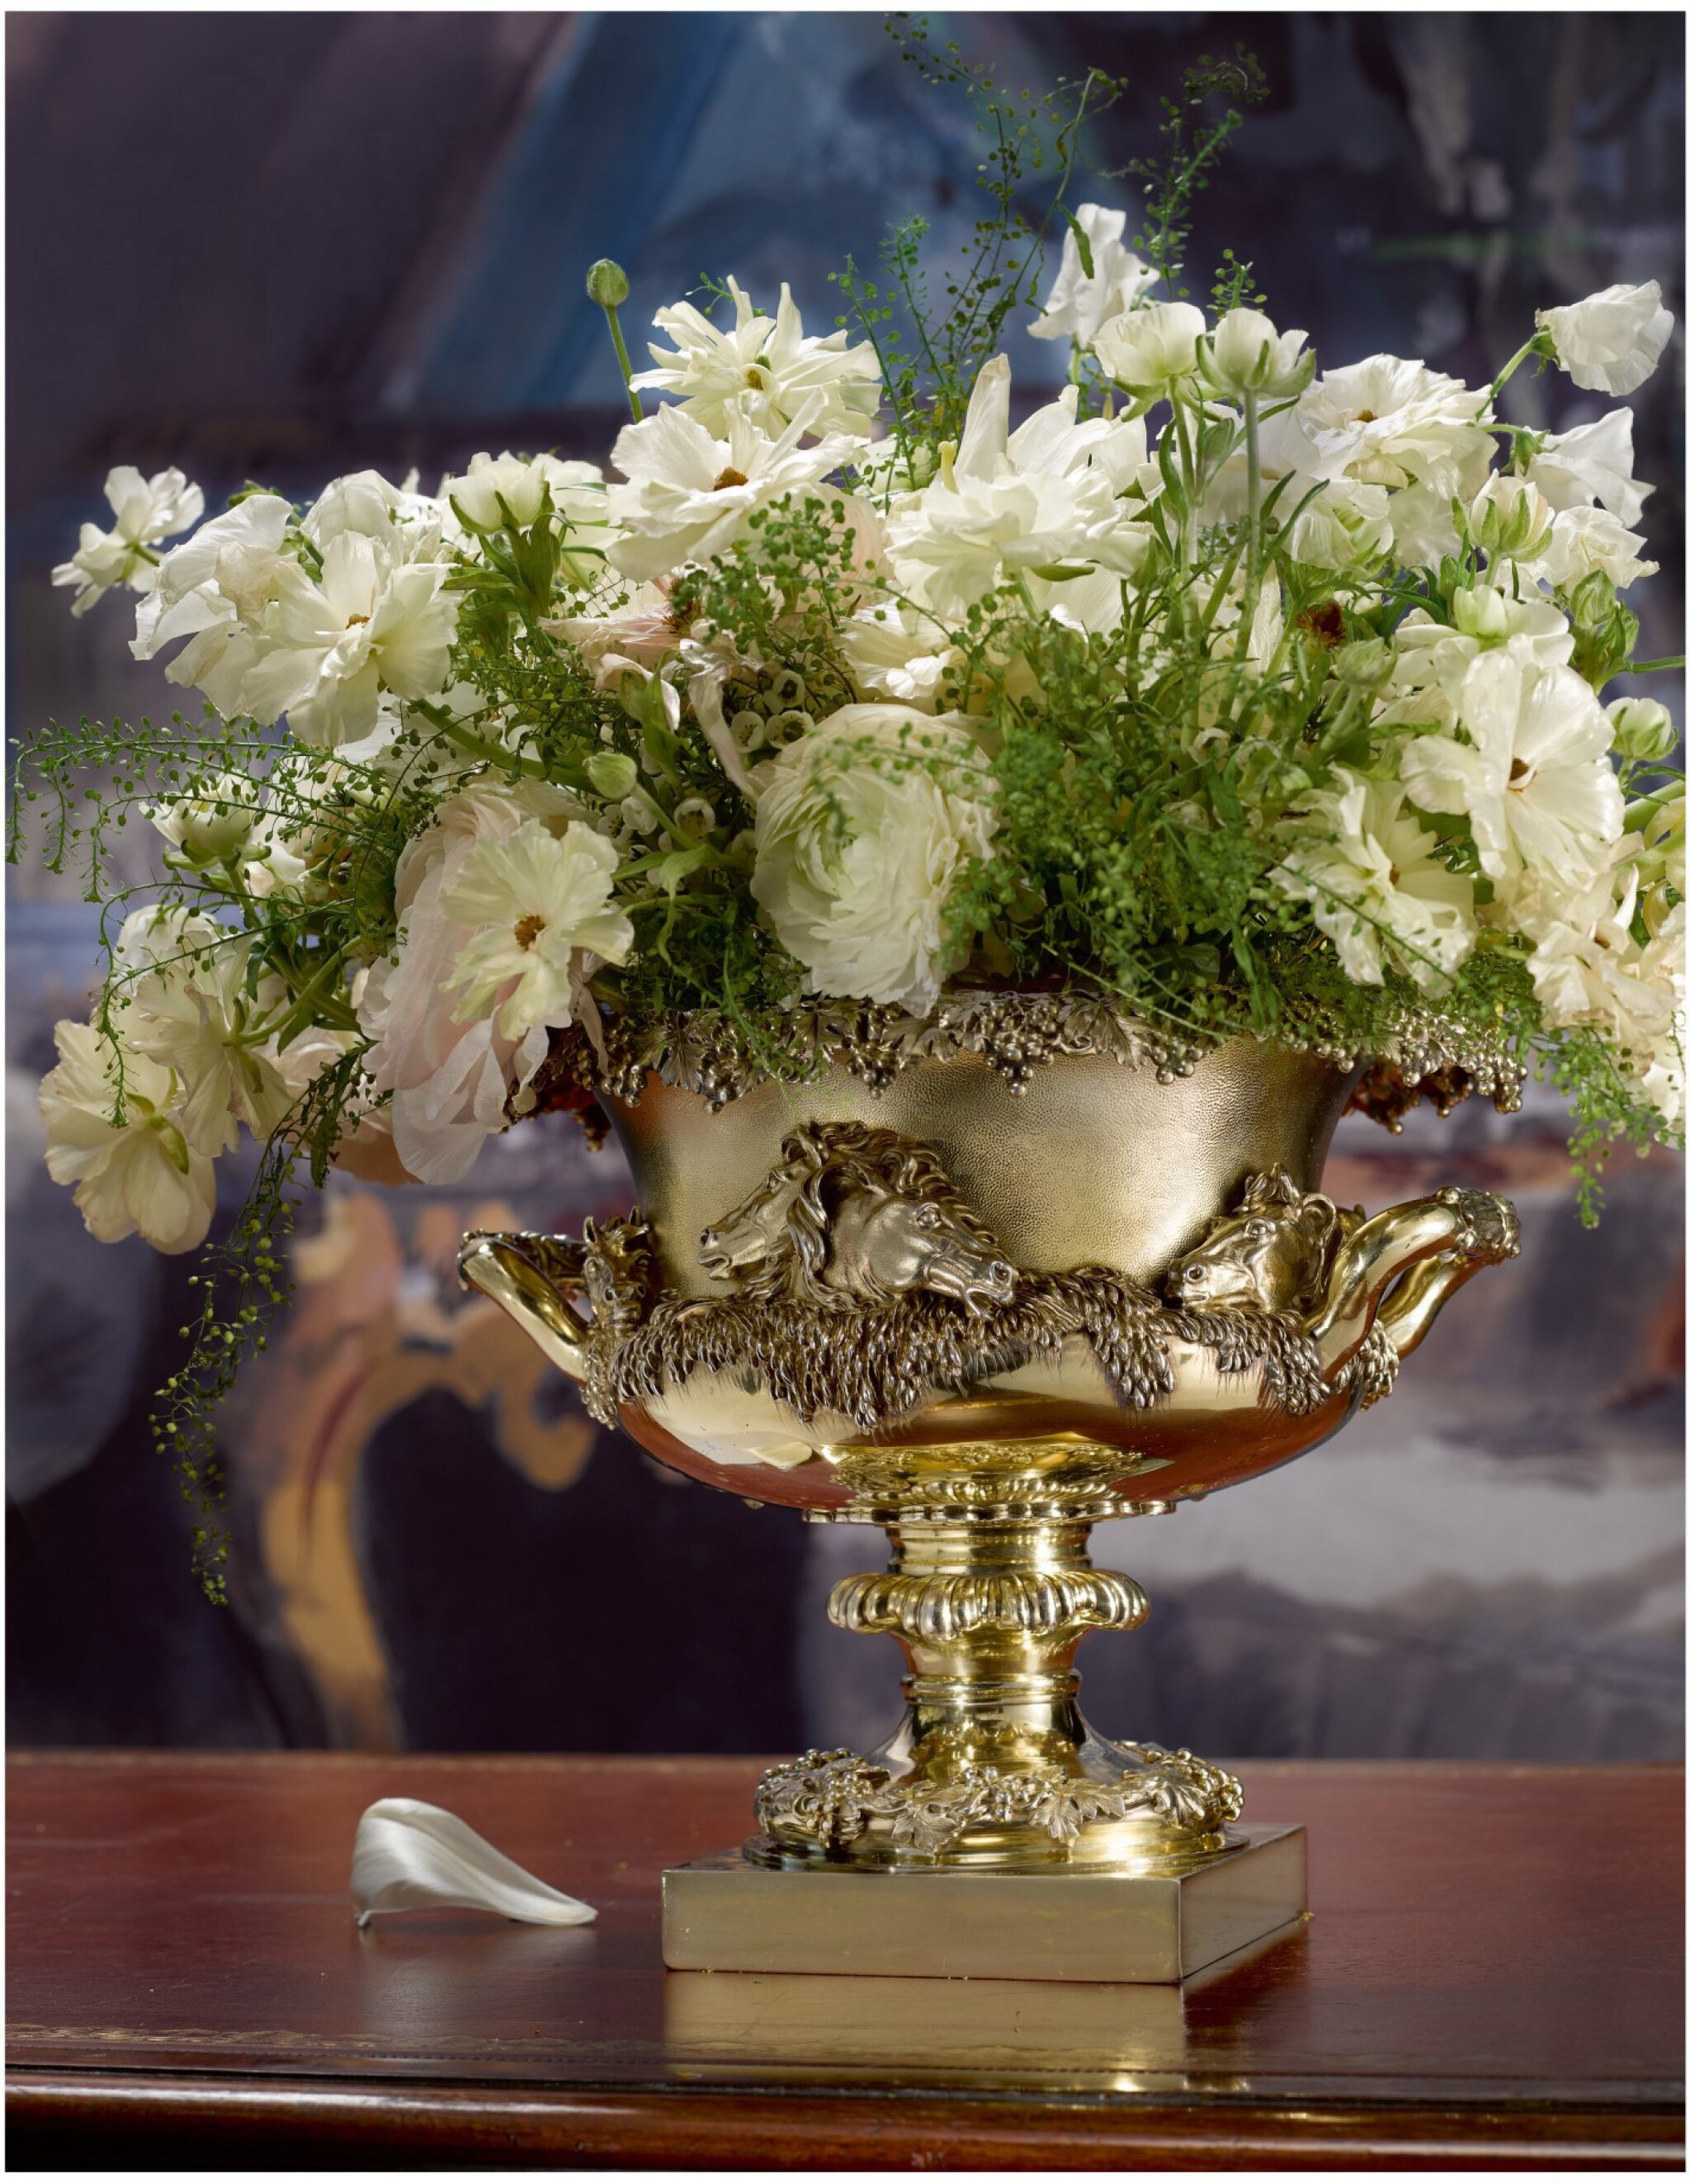 View full screen - View 1 of Lot 12. A WILLIAM IV SILVER-GILT WARWICK STYLE BOWL, PAUL STORR FOR STORR & MORTIMER, LONDON, 1830.